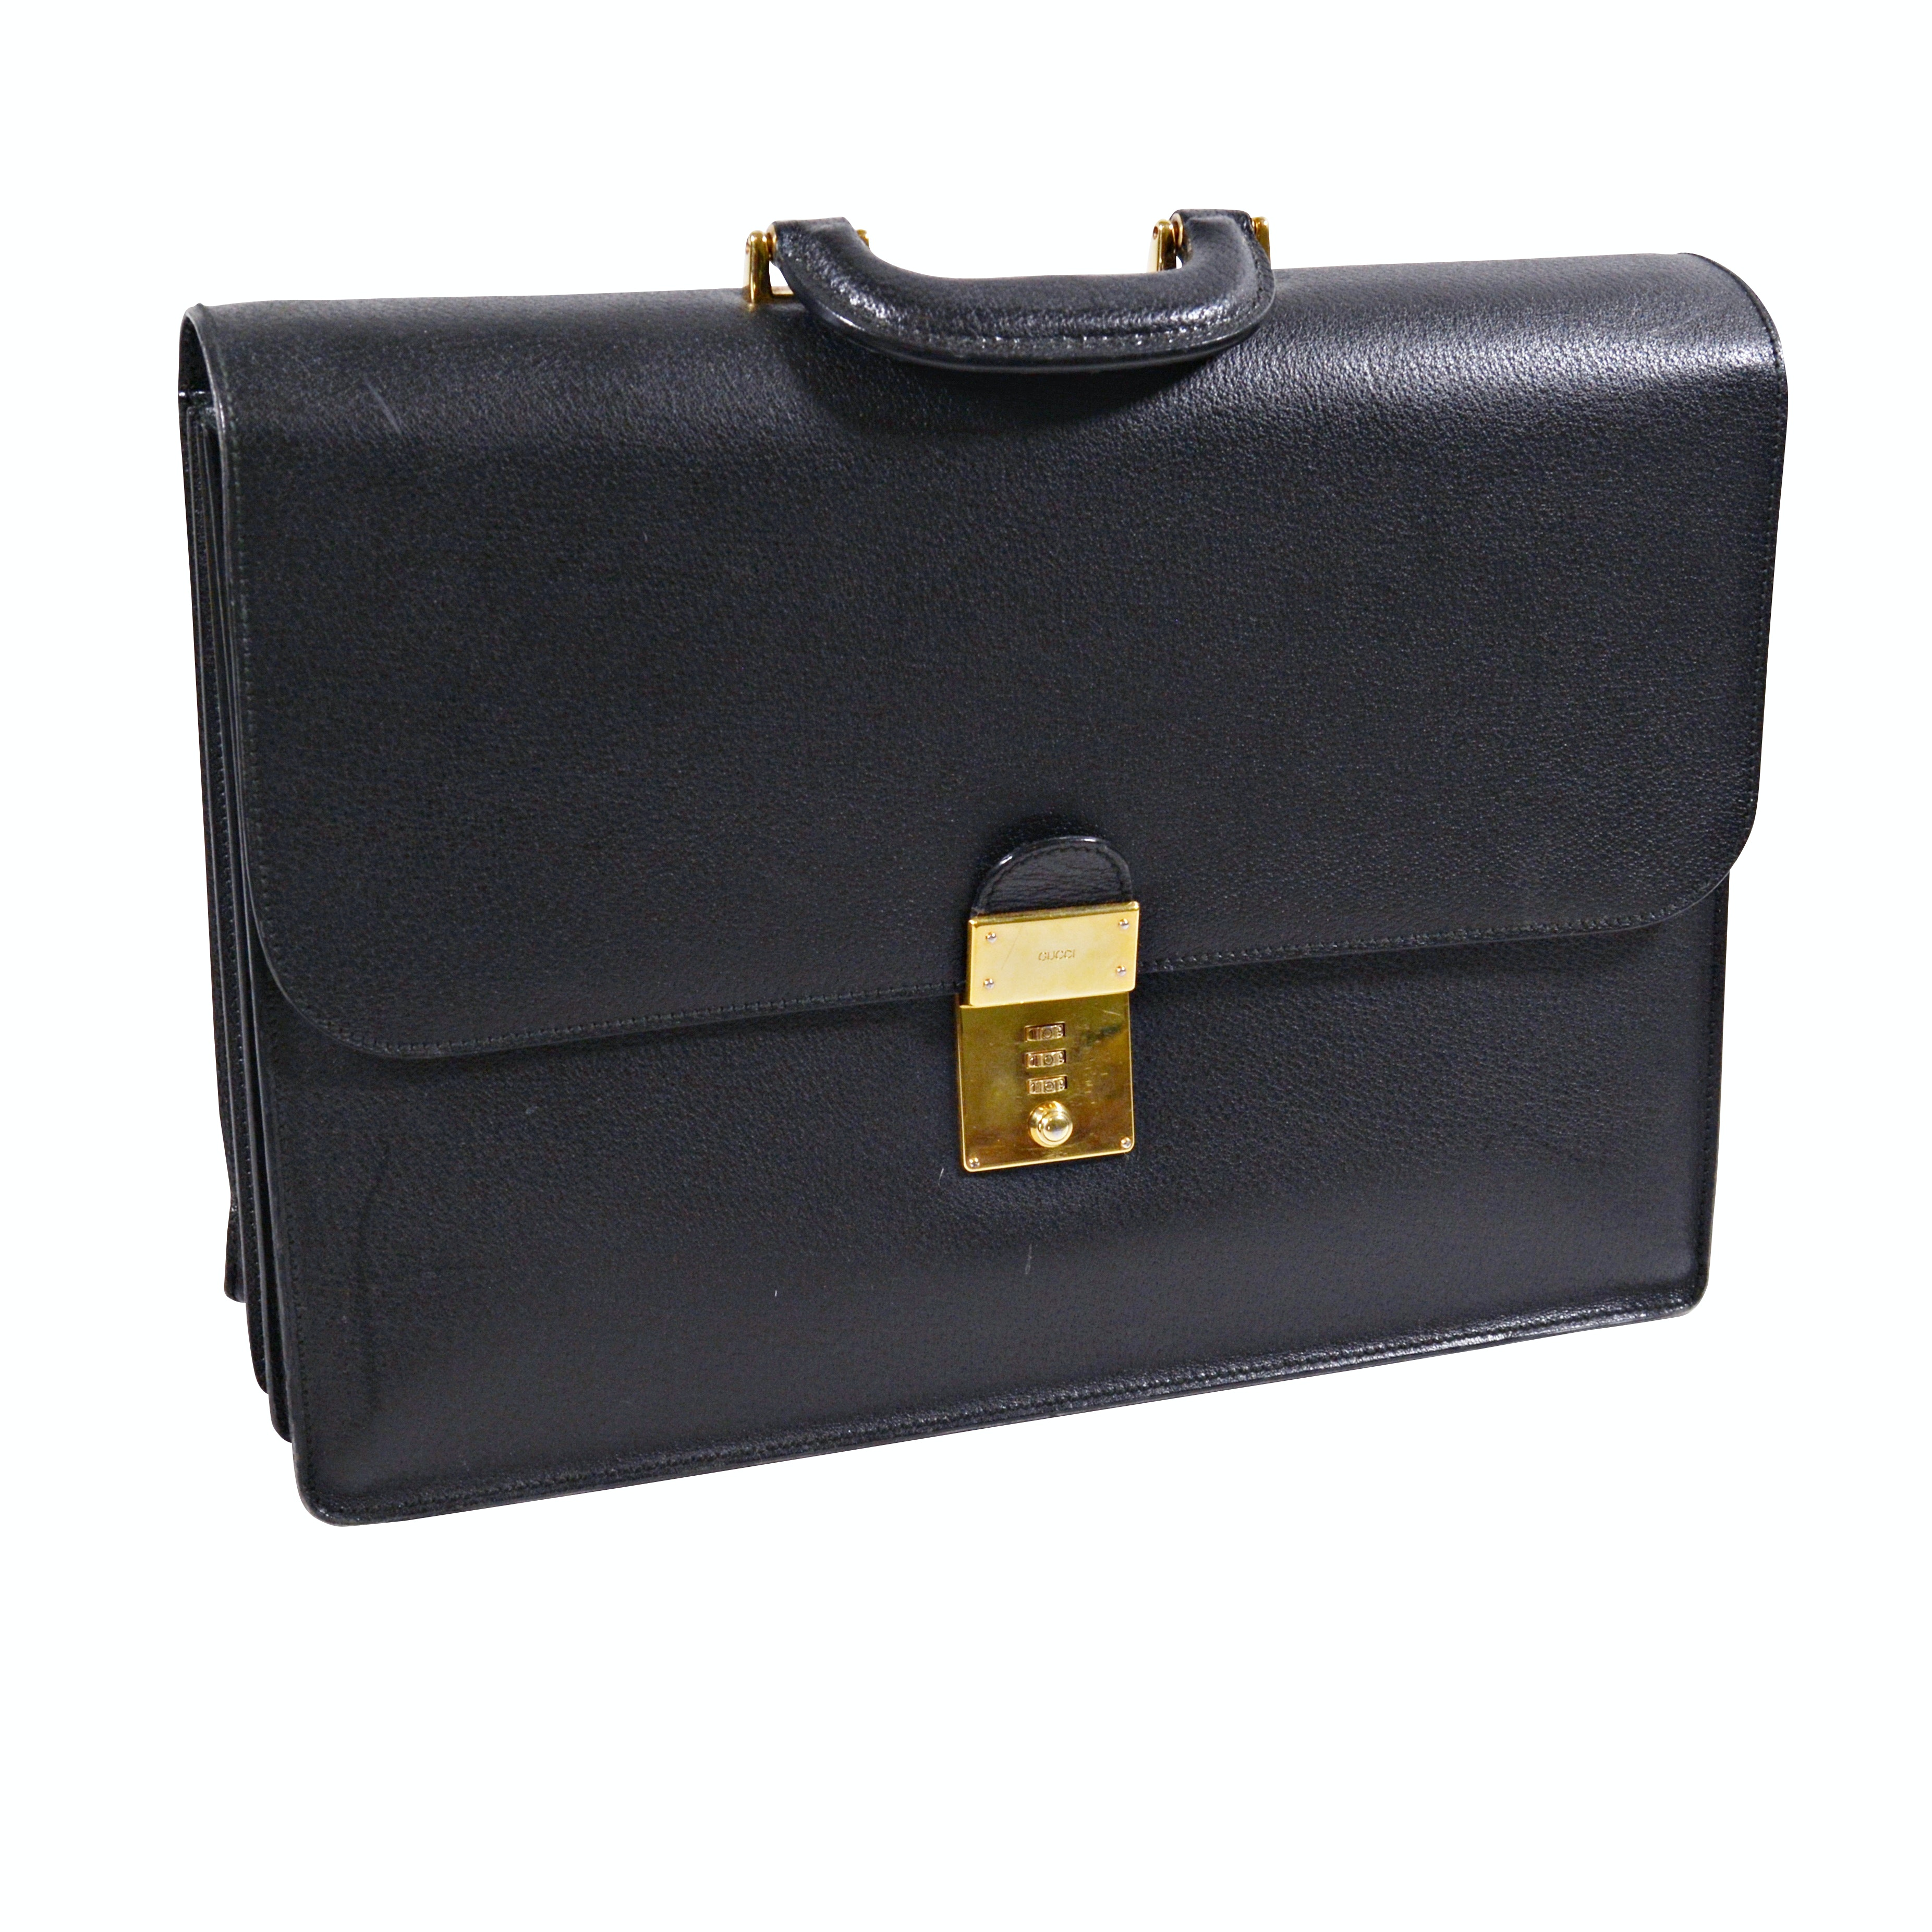 Gucci Black Grained Leather Flap Briefcase